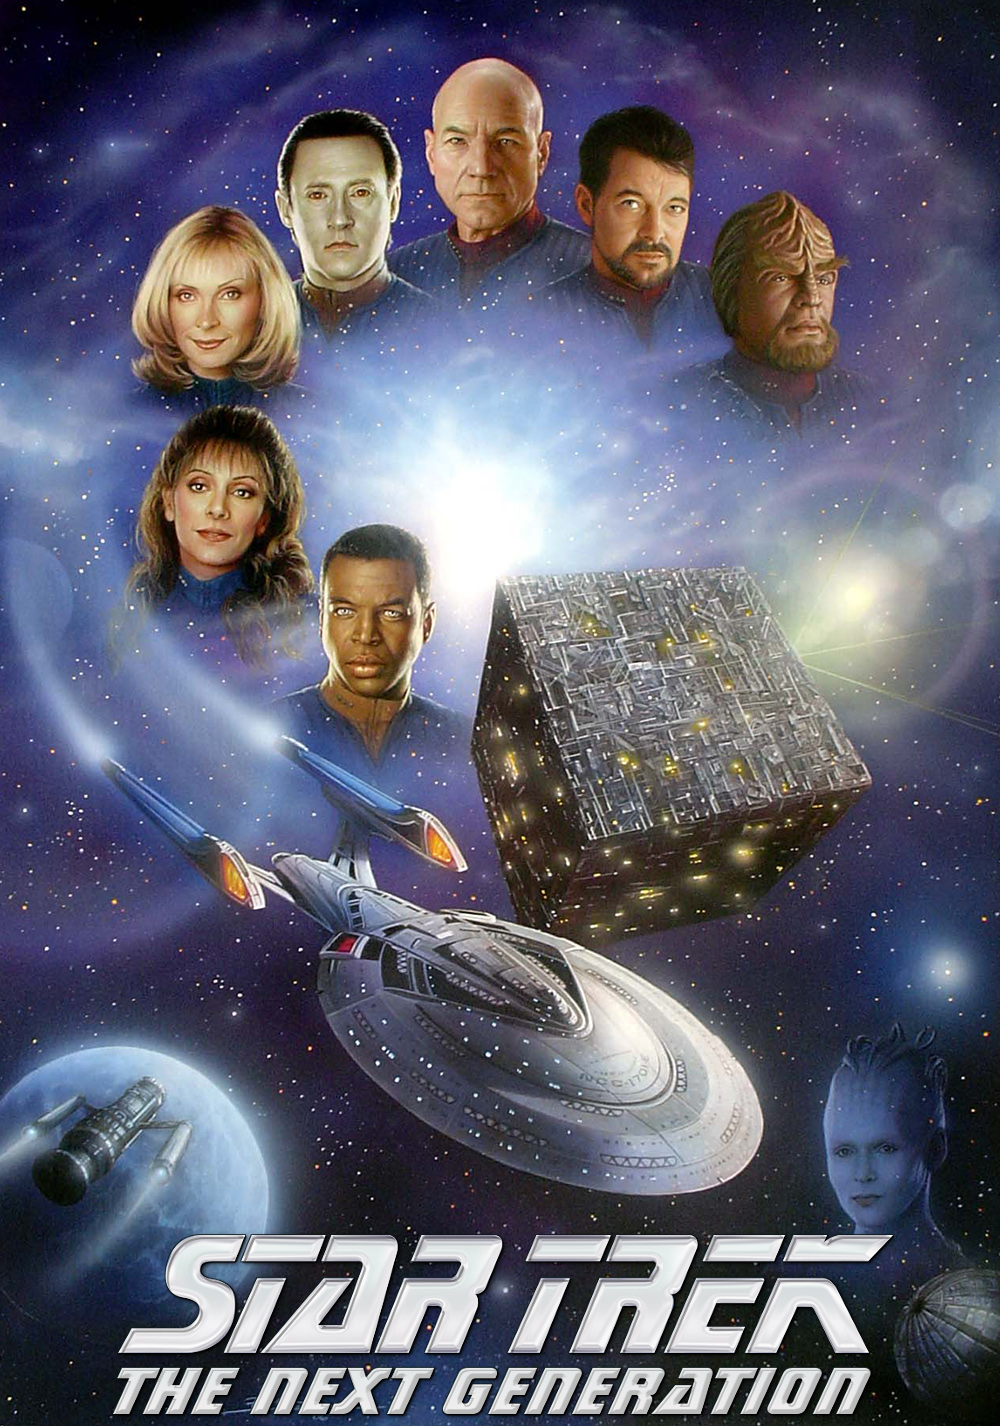 Star Trek: The Next Generation – Season 3